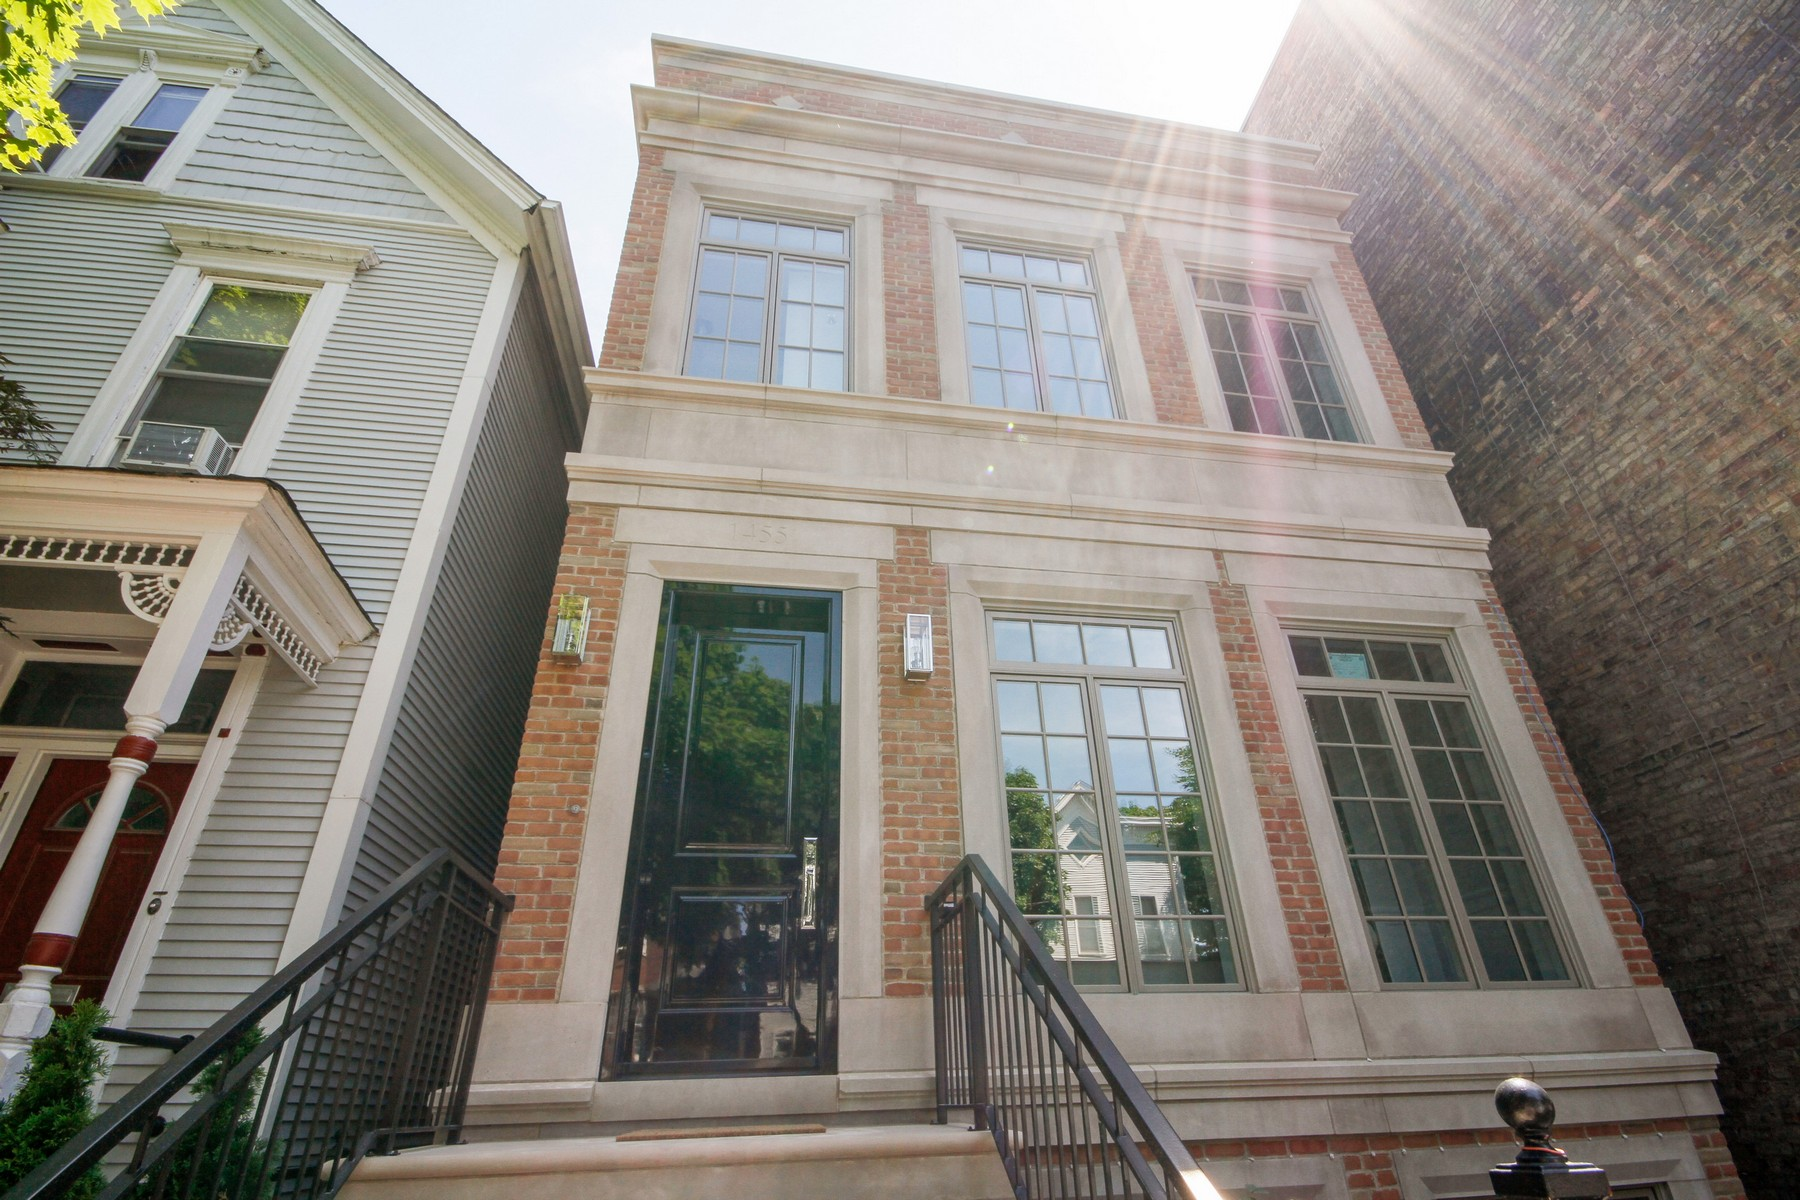 Single Family Home for Sale at Exquisite New Construction 1455 W School Street Lakeview, Chicago, Illinois, 60657 United States